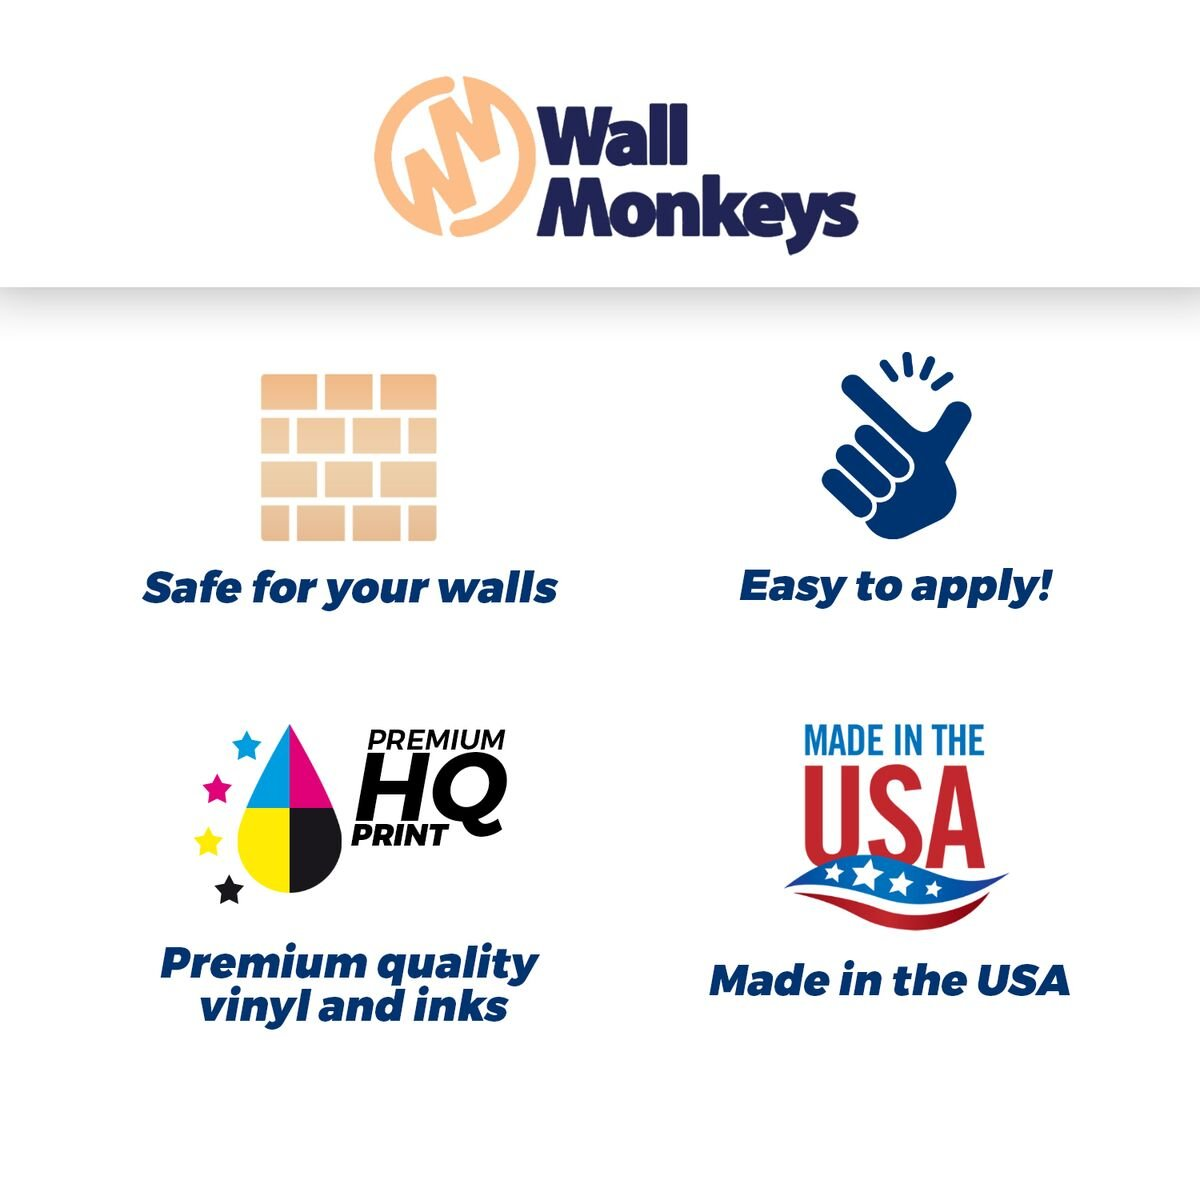 Wallmonkeys Lime Wall Decal Peel and Stick Graphic WM78332 18 in H x 16 in W